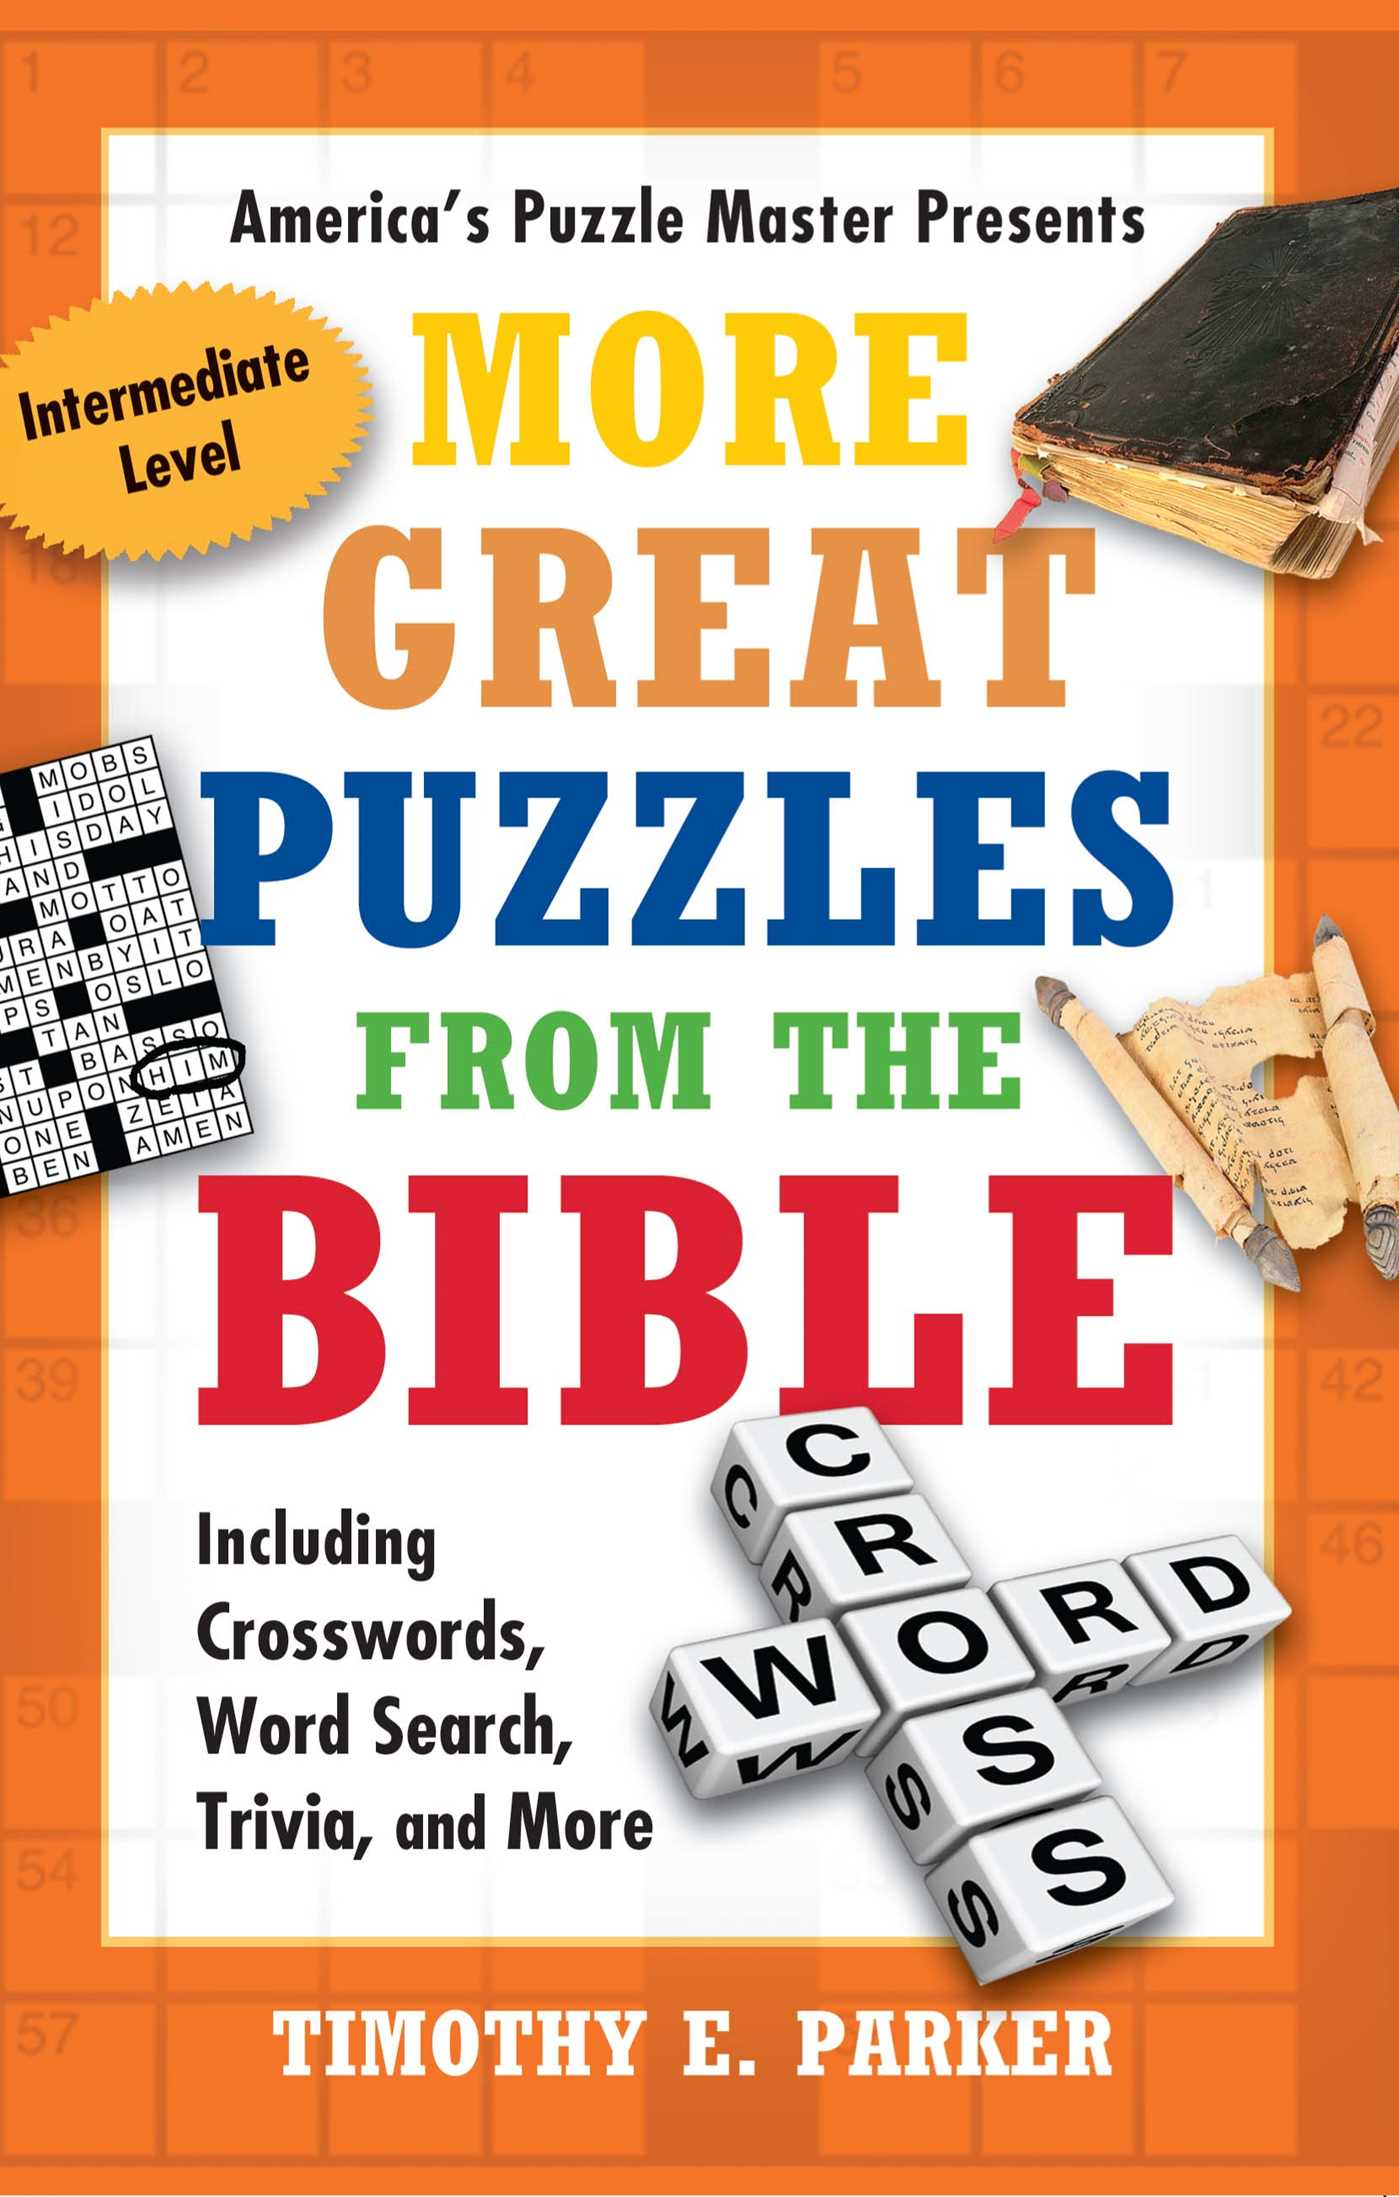 More great puzzles from the bible 9781439192283 hr